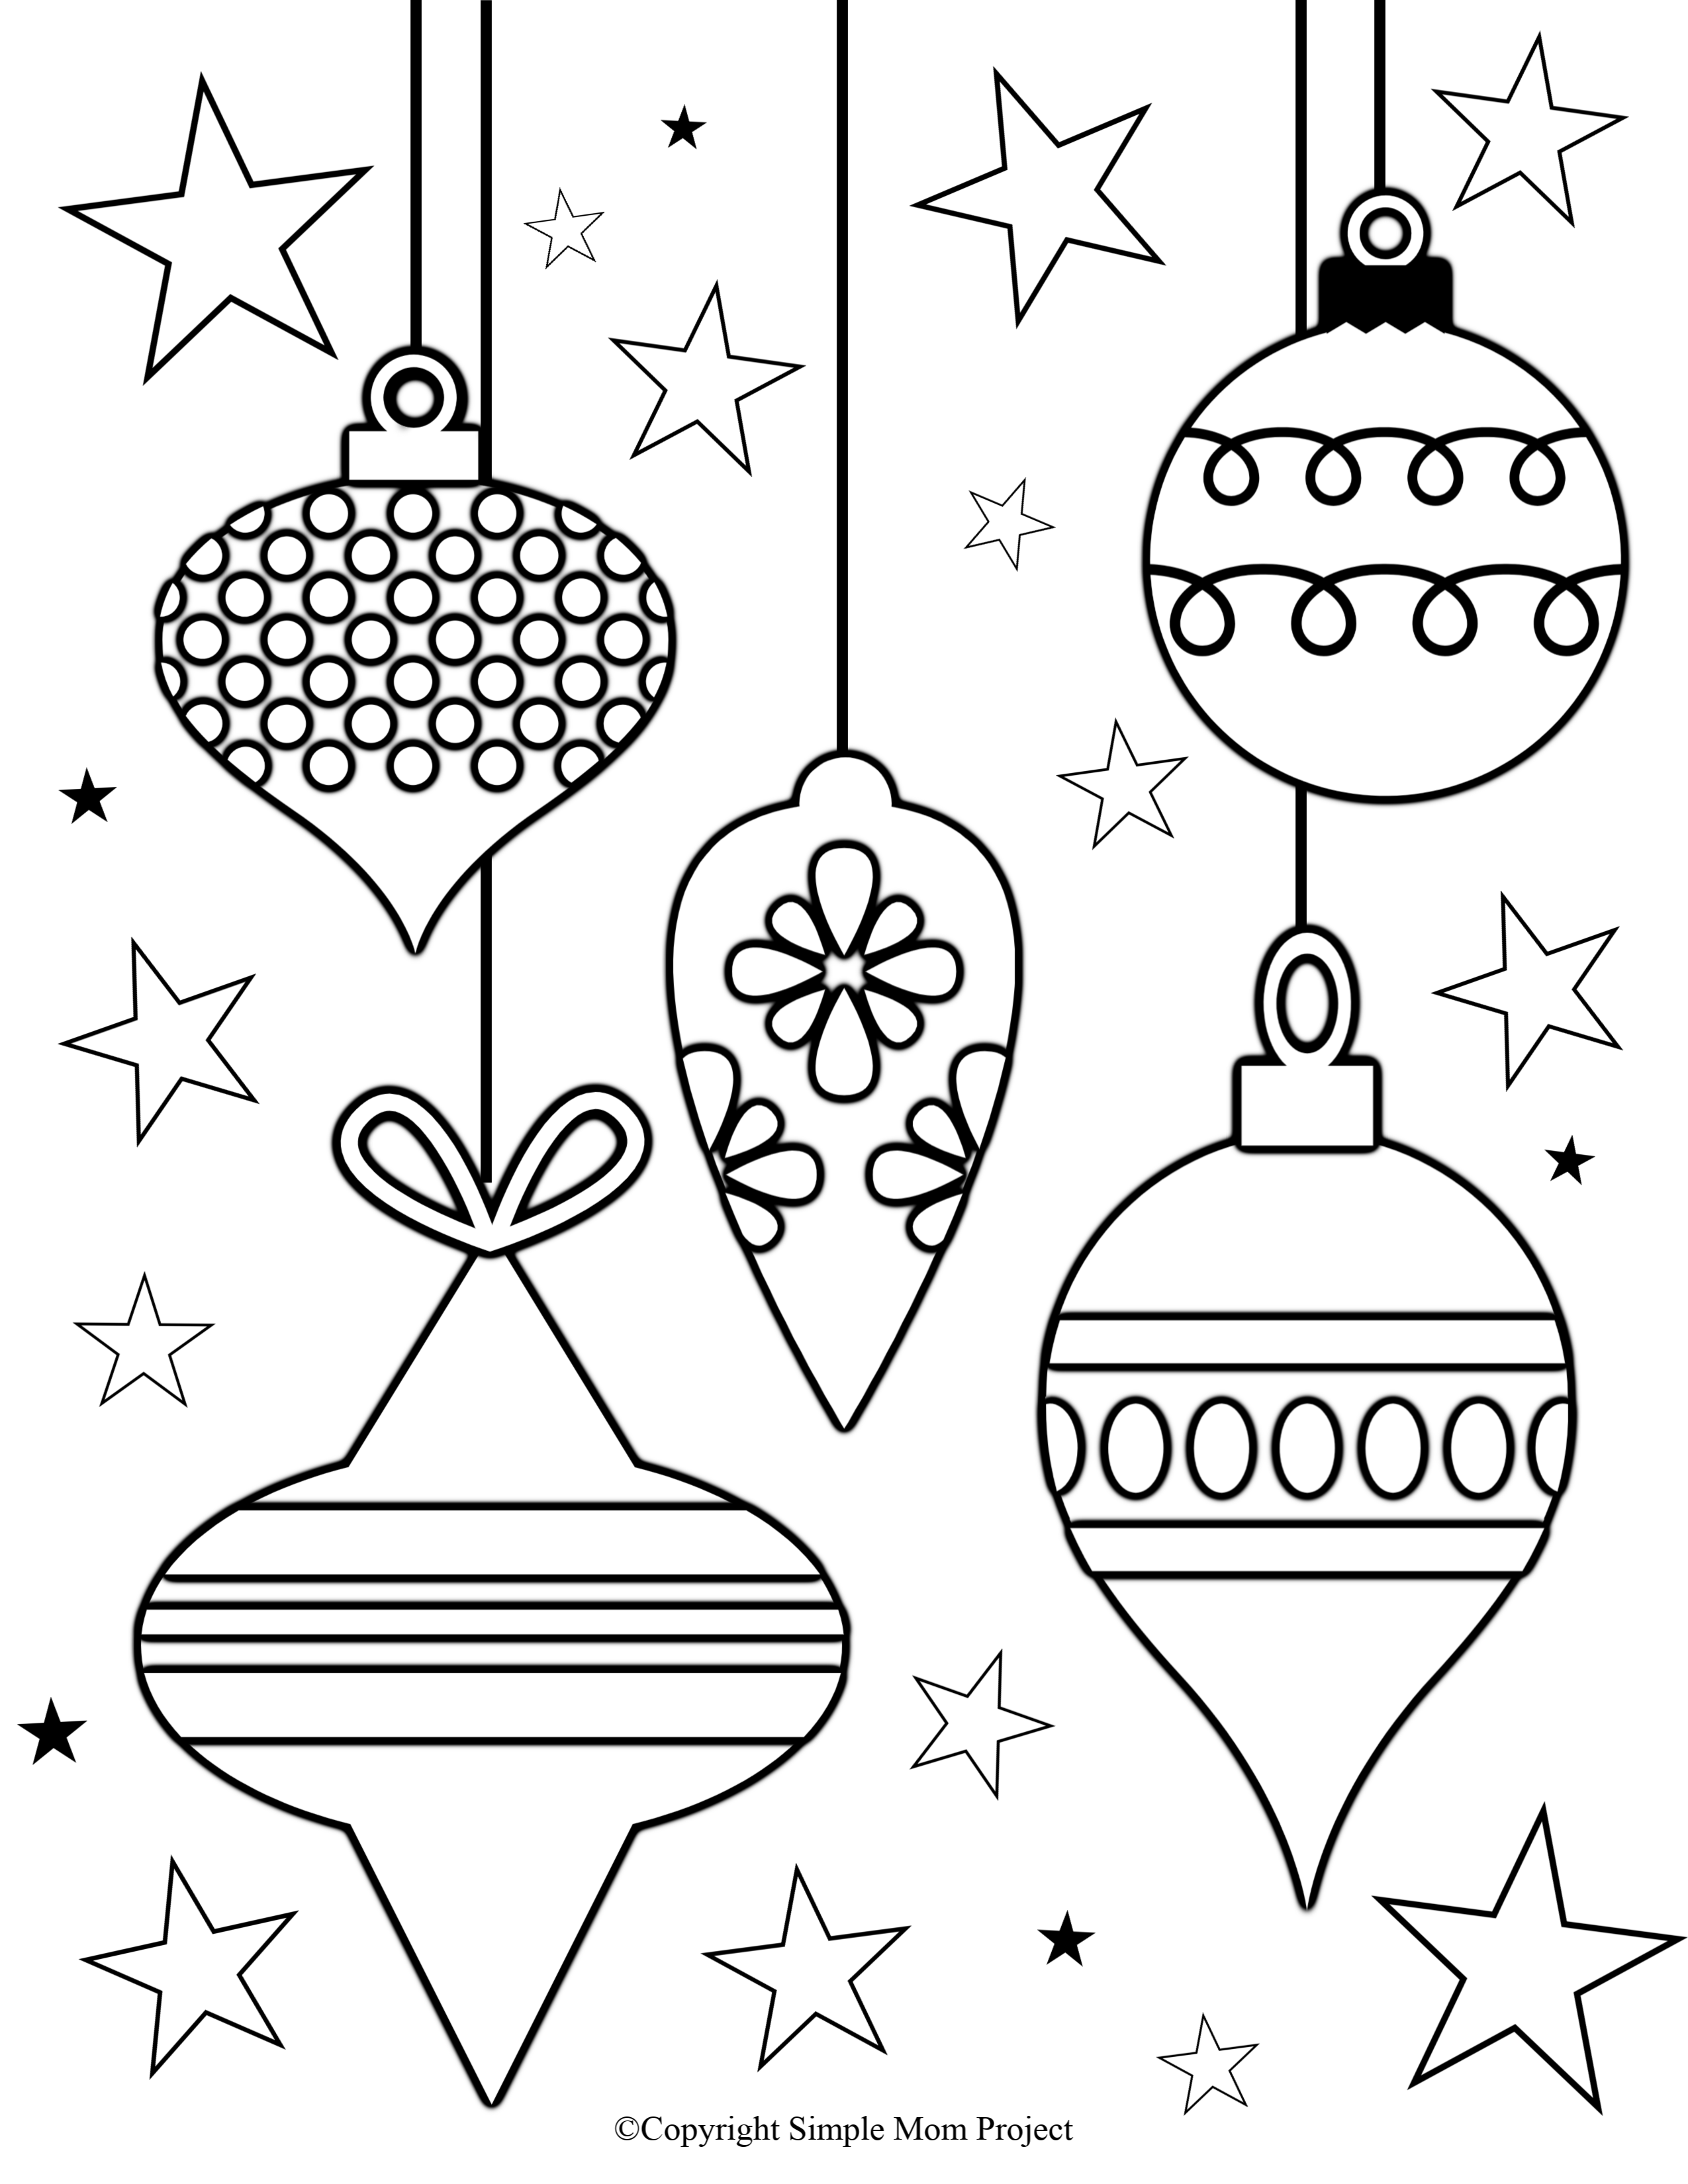 Click now to print these cute, FREE Christmas coloring